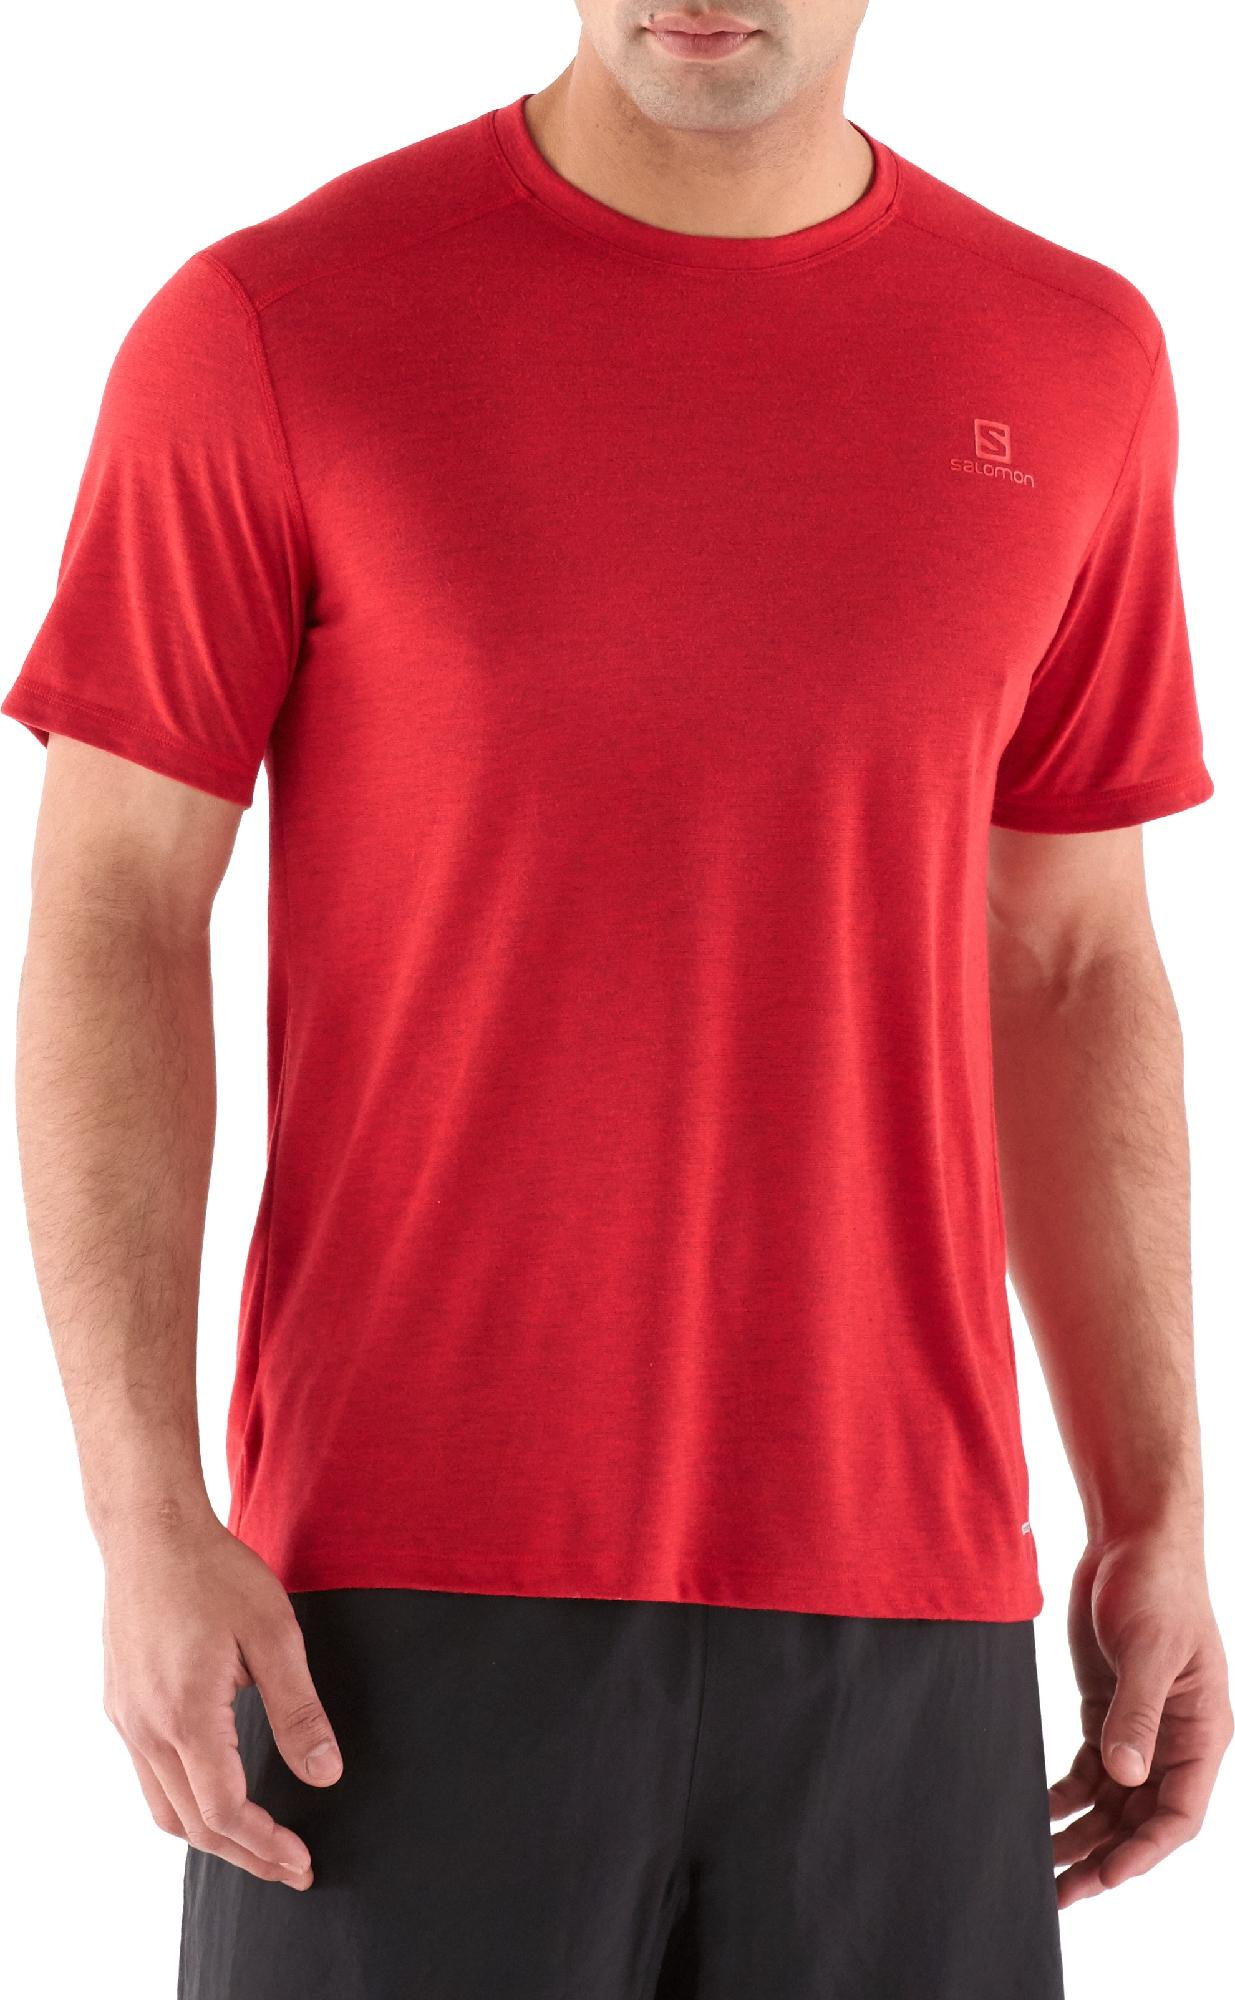 Salomon Cairn T-Shirt - Men's